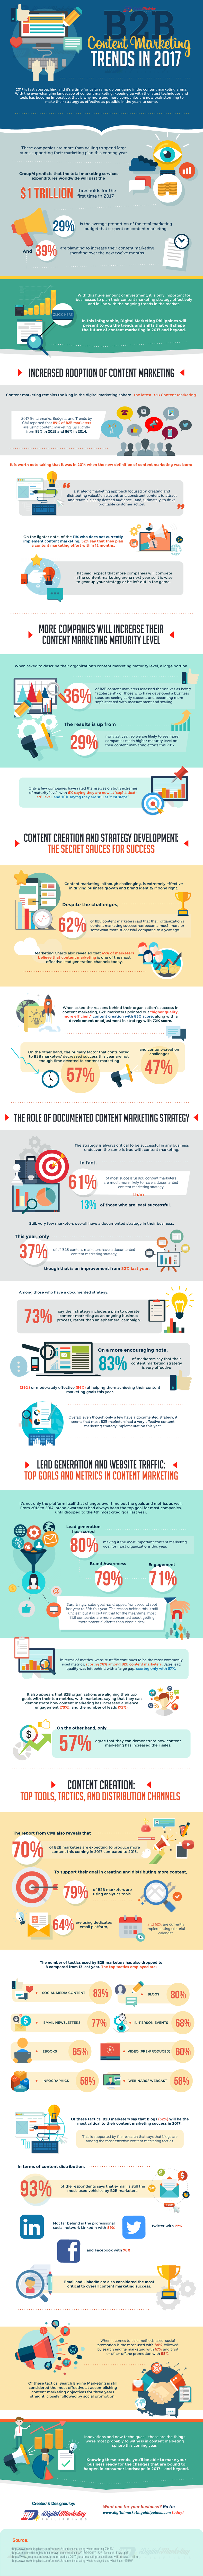 B2B-Content-Marketing-Trends-in-2017-HD